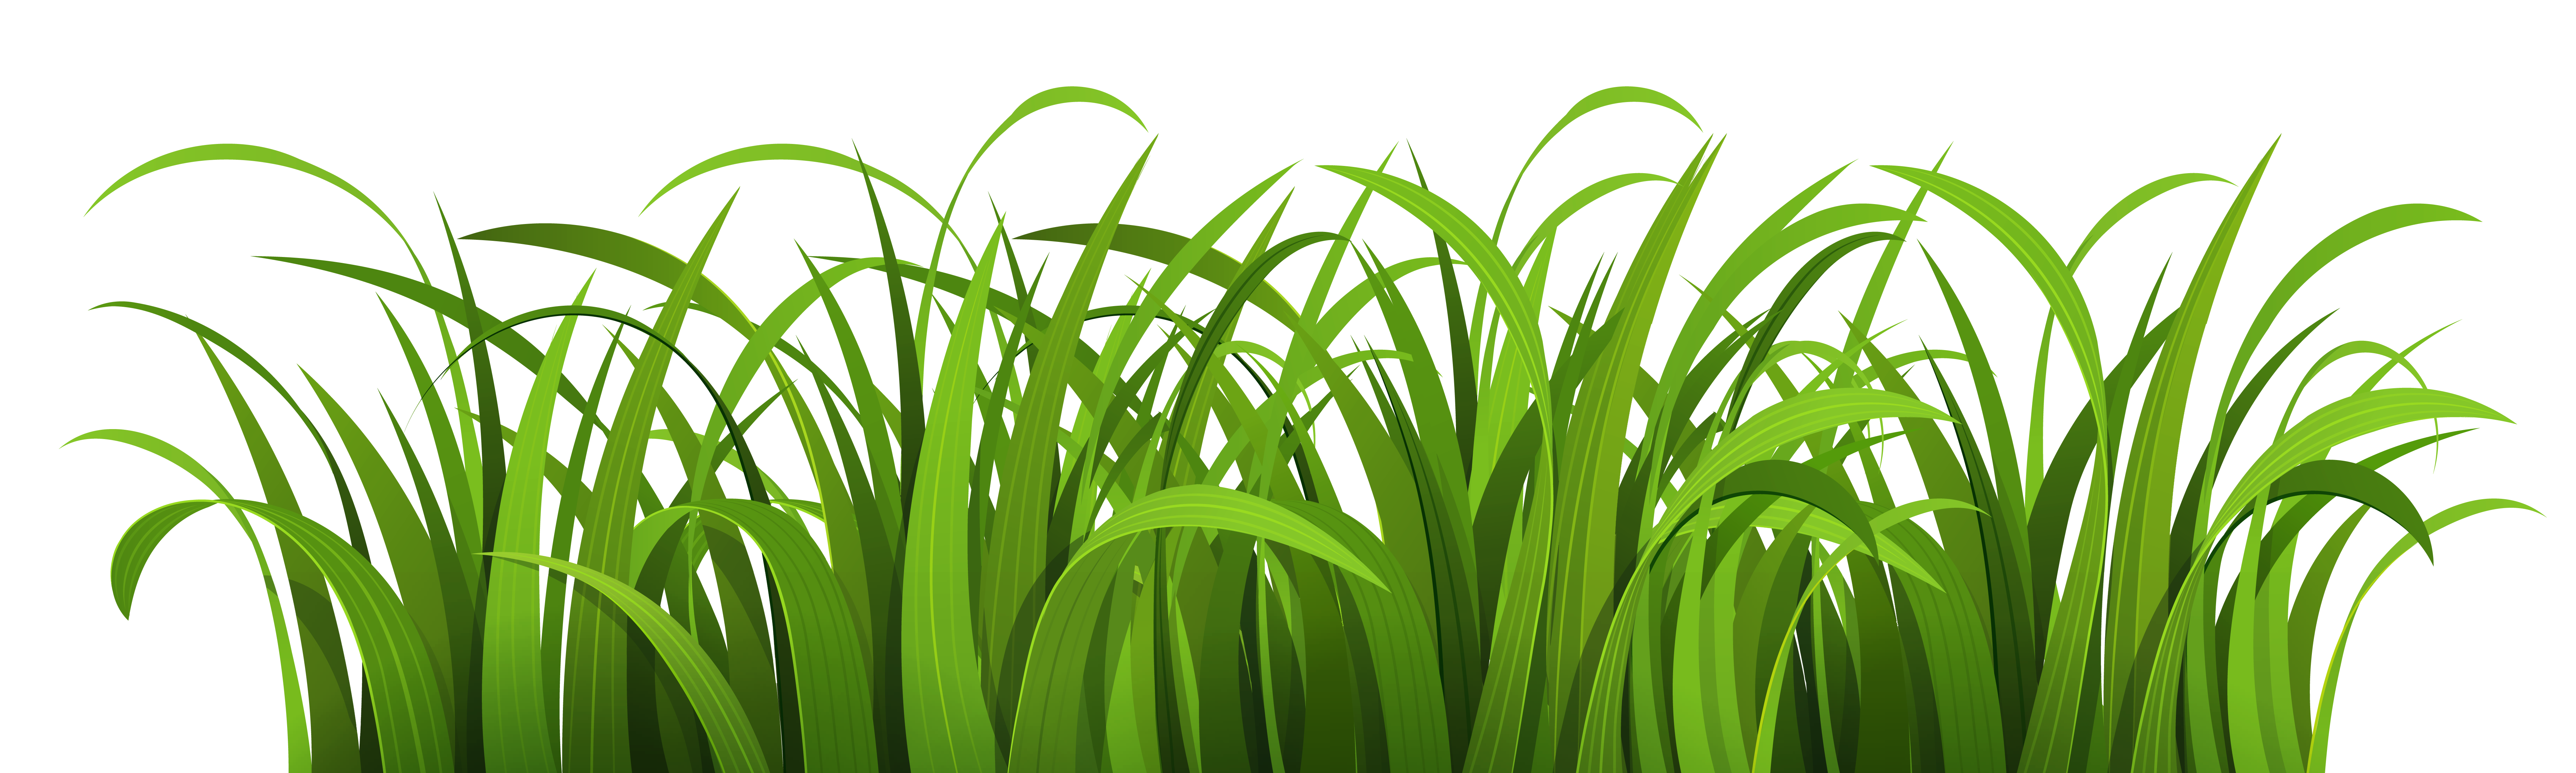 Grass PNG Image.